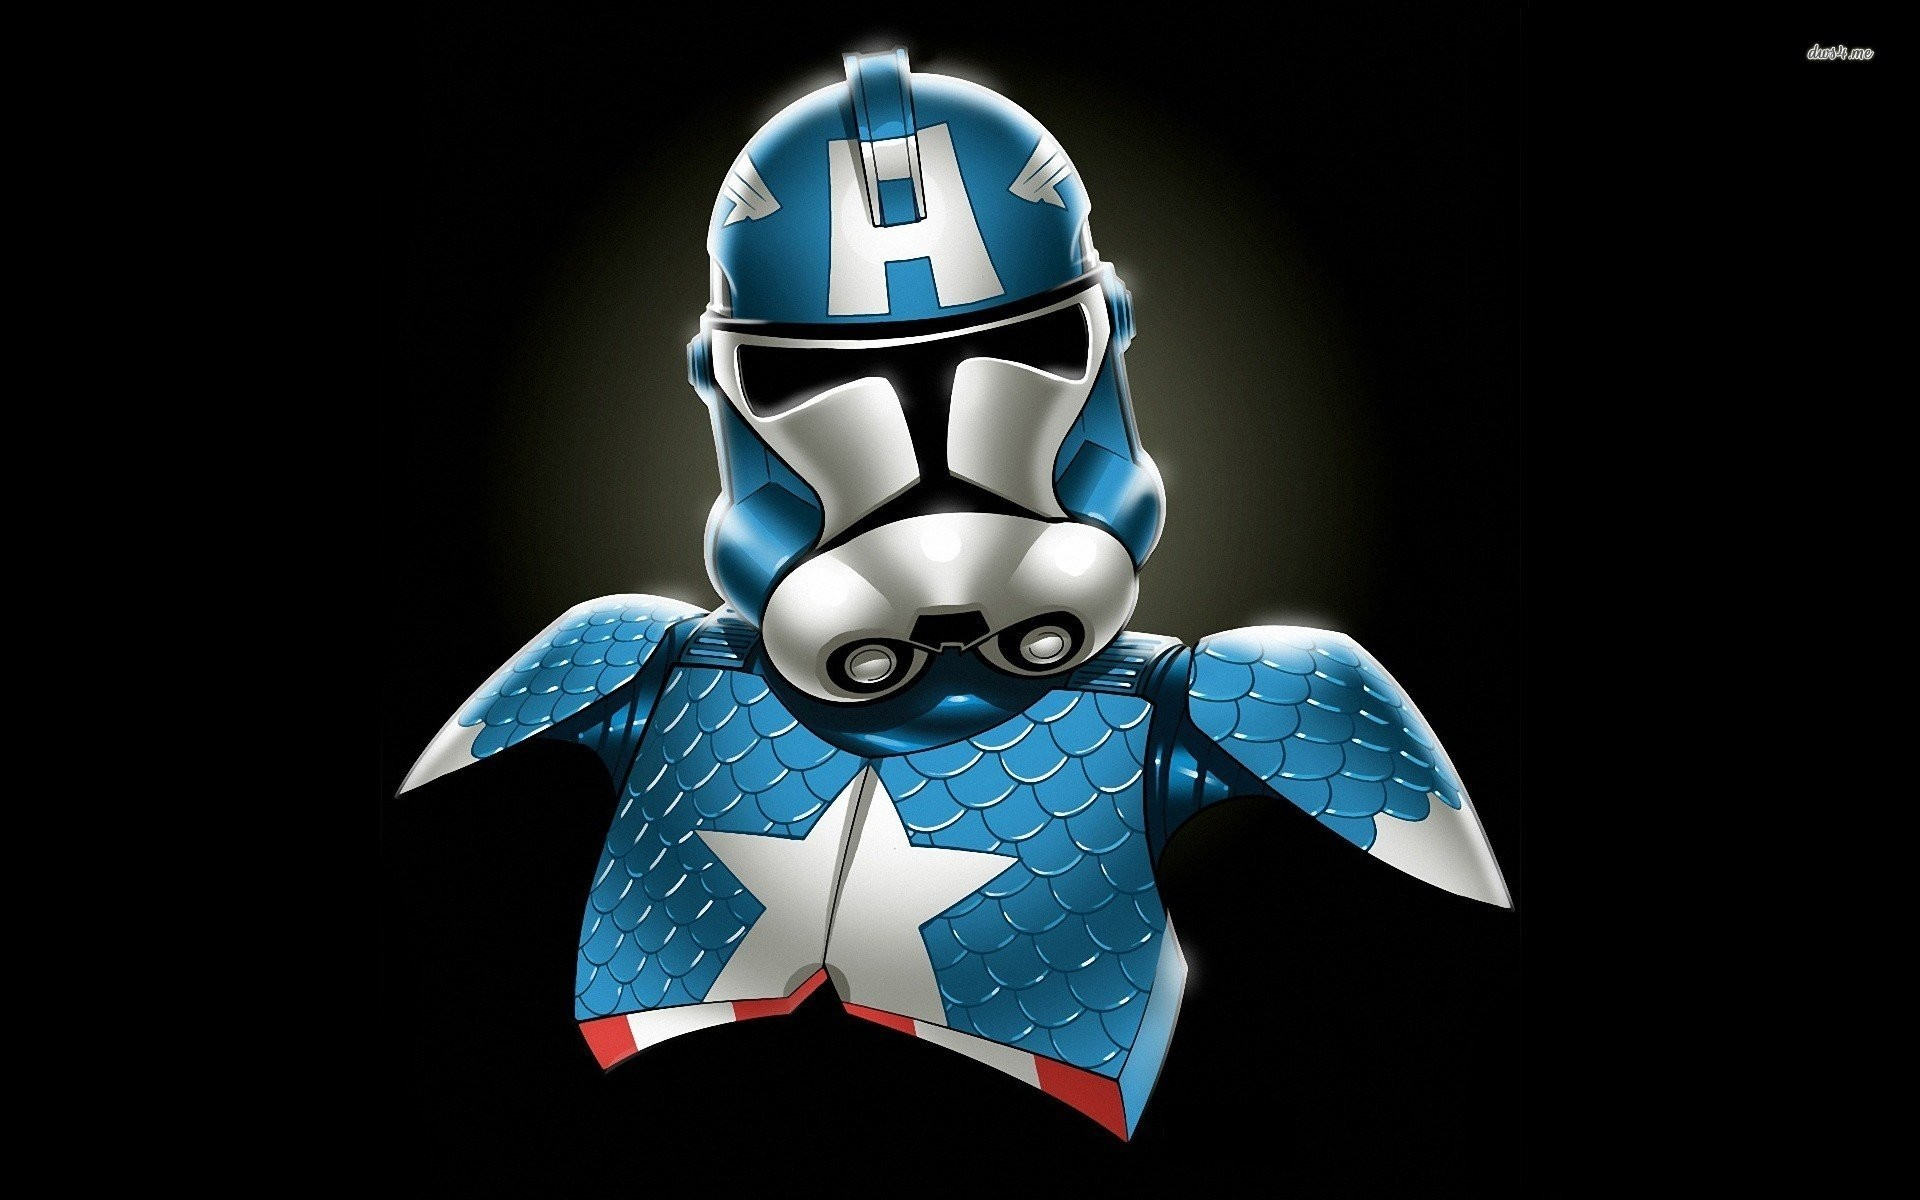 1920x1080 Funny Hd Storm Trooper Wallpaper With Resolutions 1920a 1080 Px